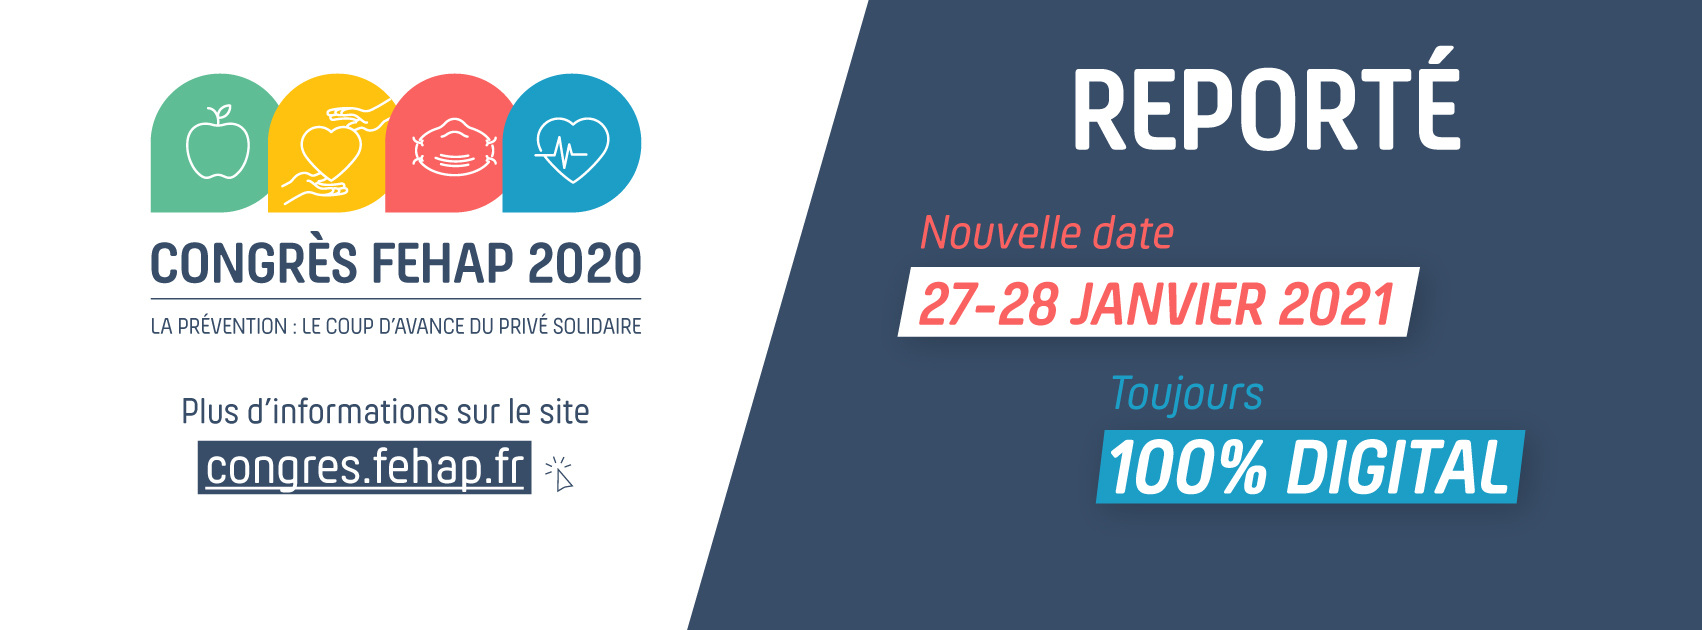 RS Carrousel Congres 2020 report